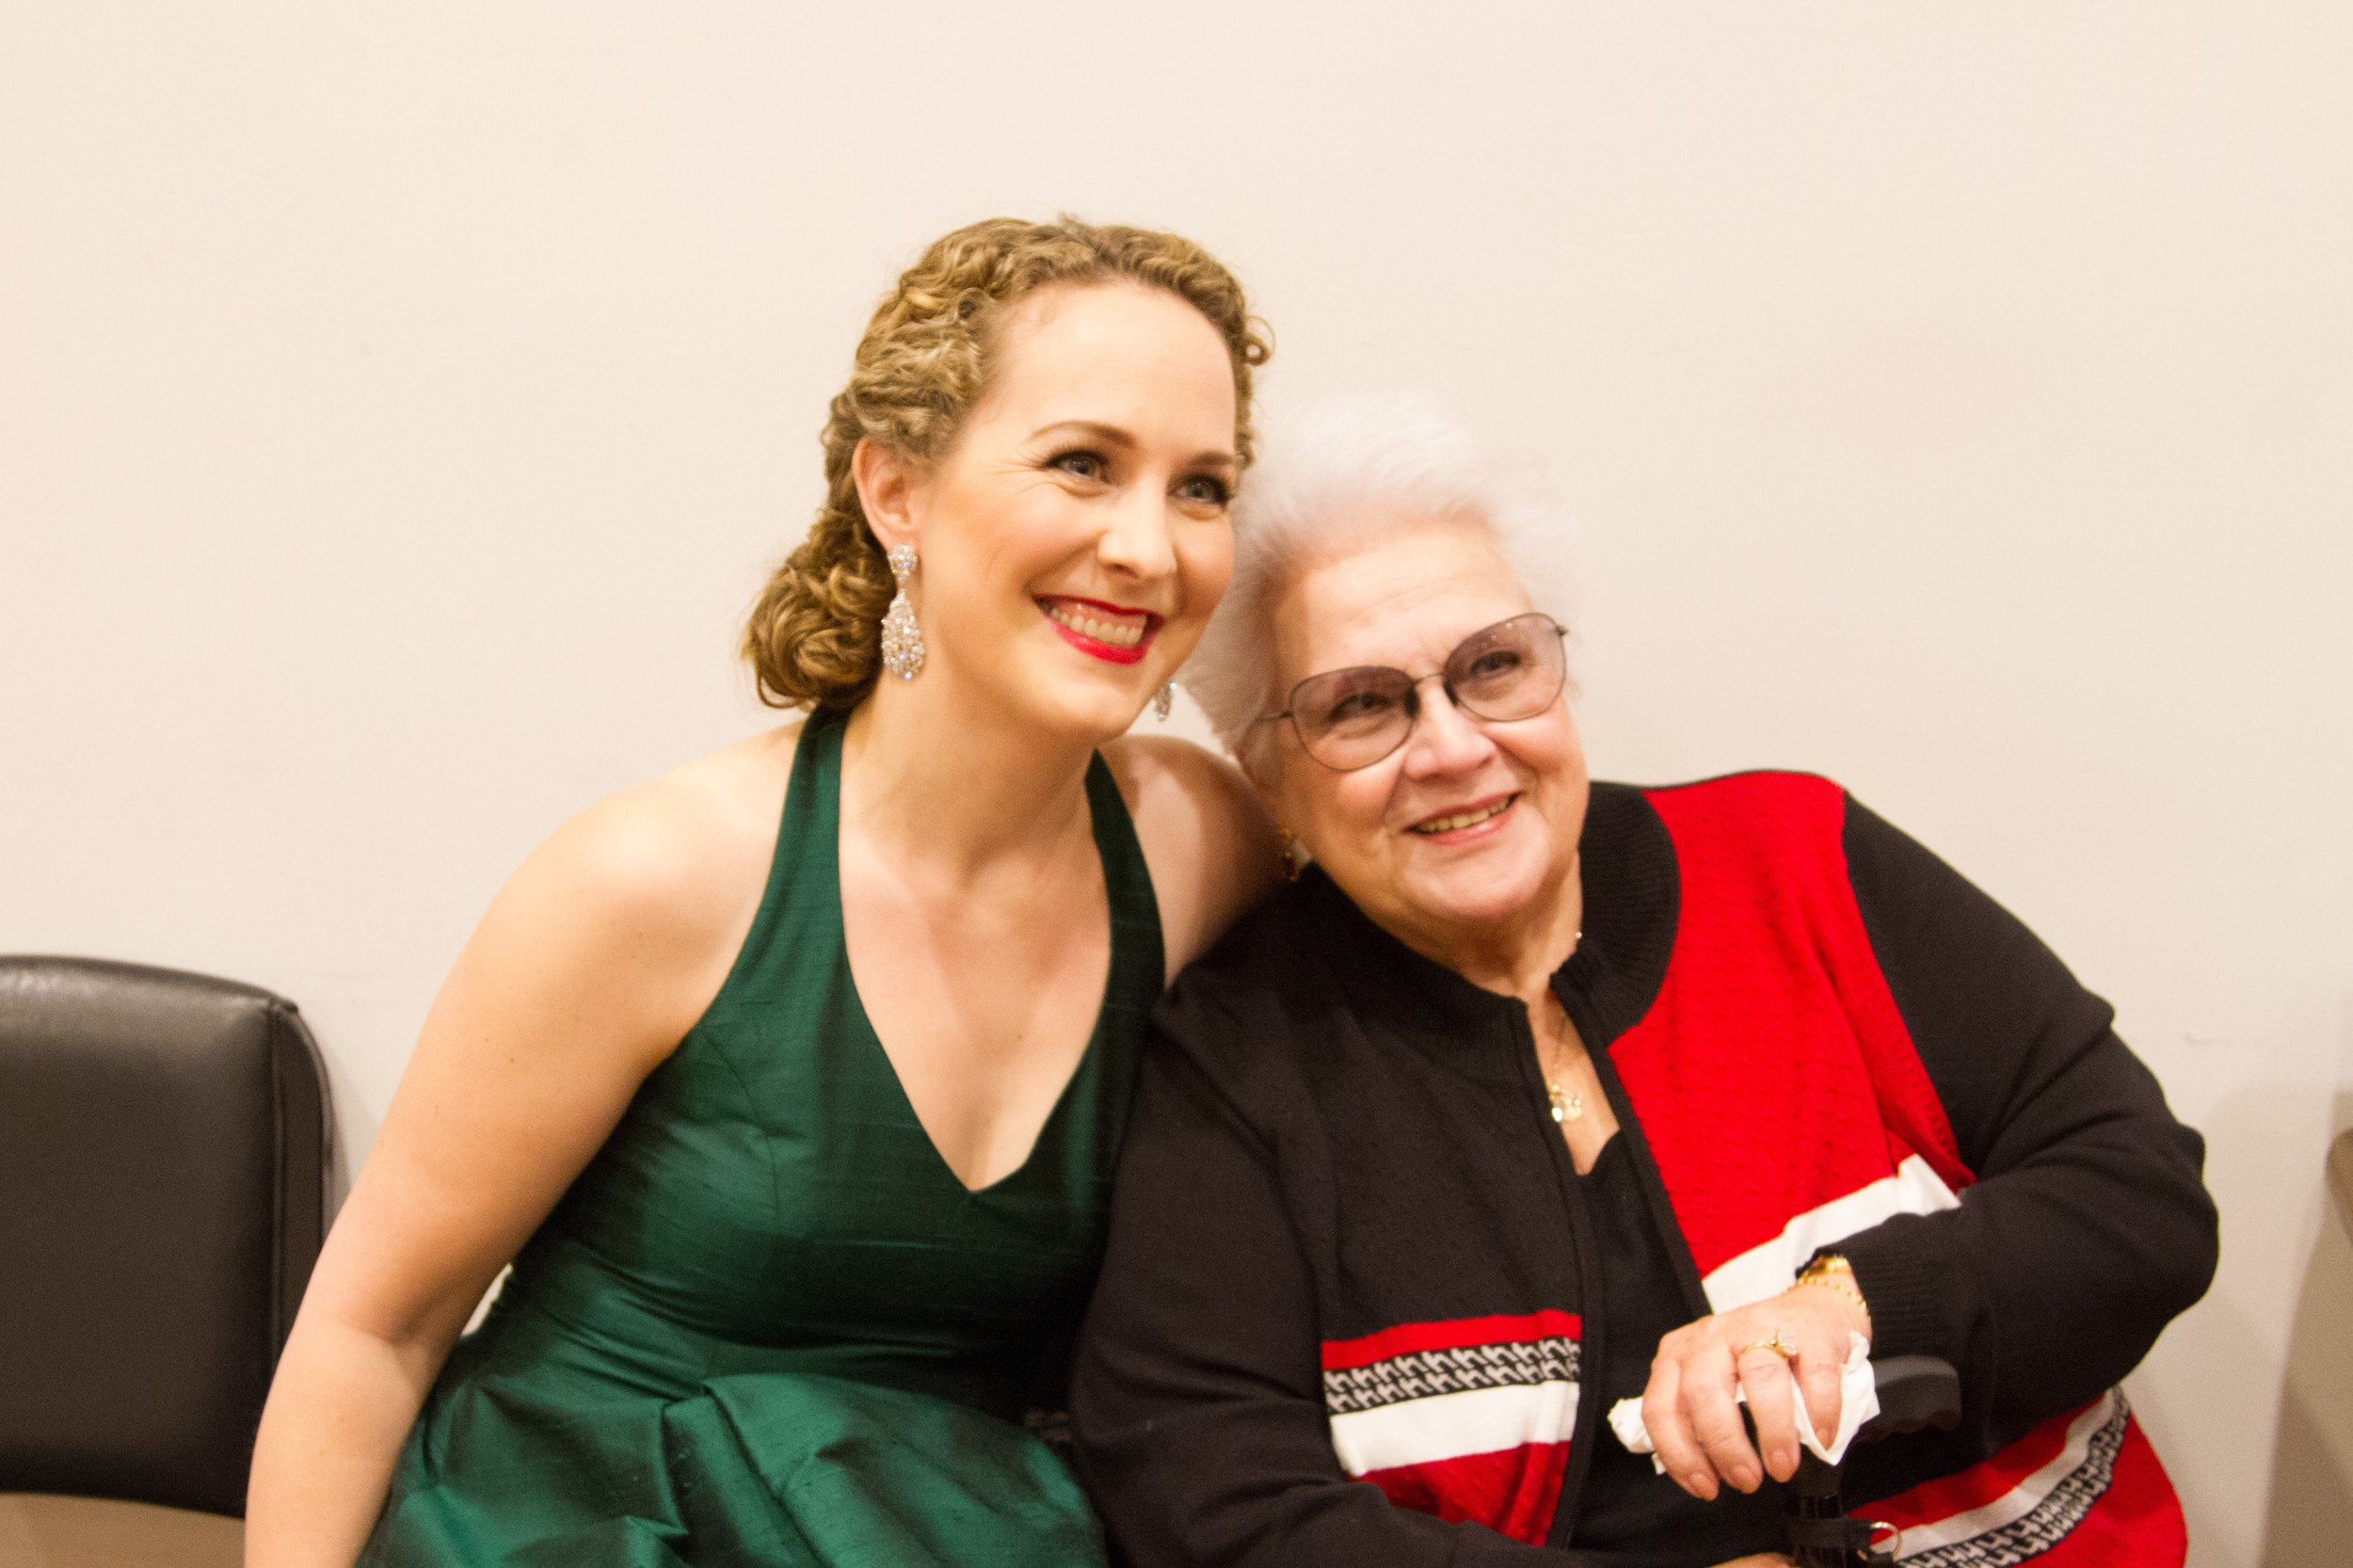 Backstage at Carnegie Hall with mentor Marilyn Horne